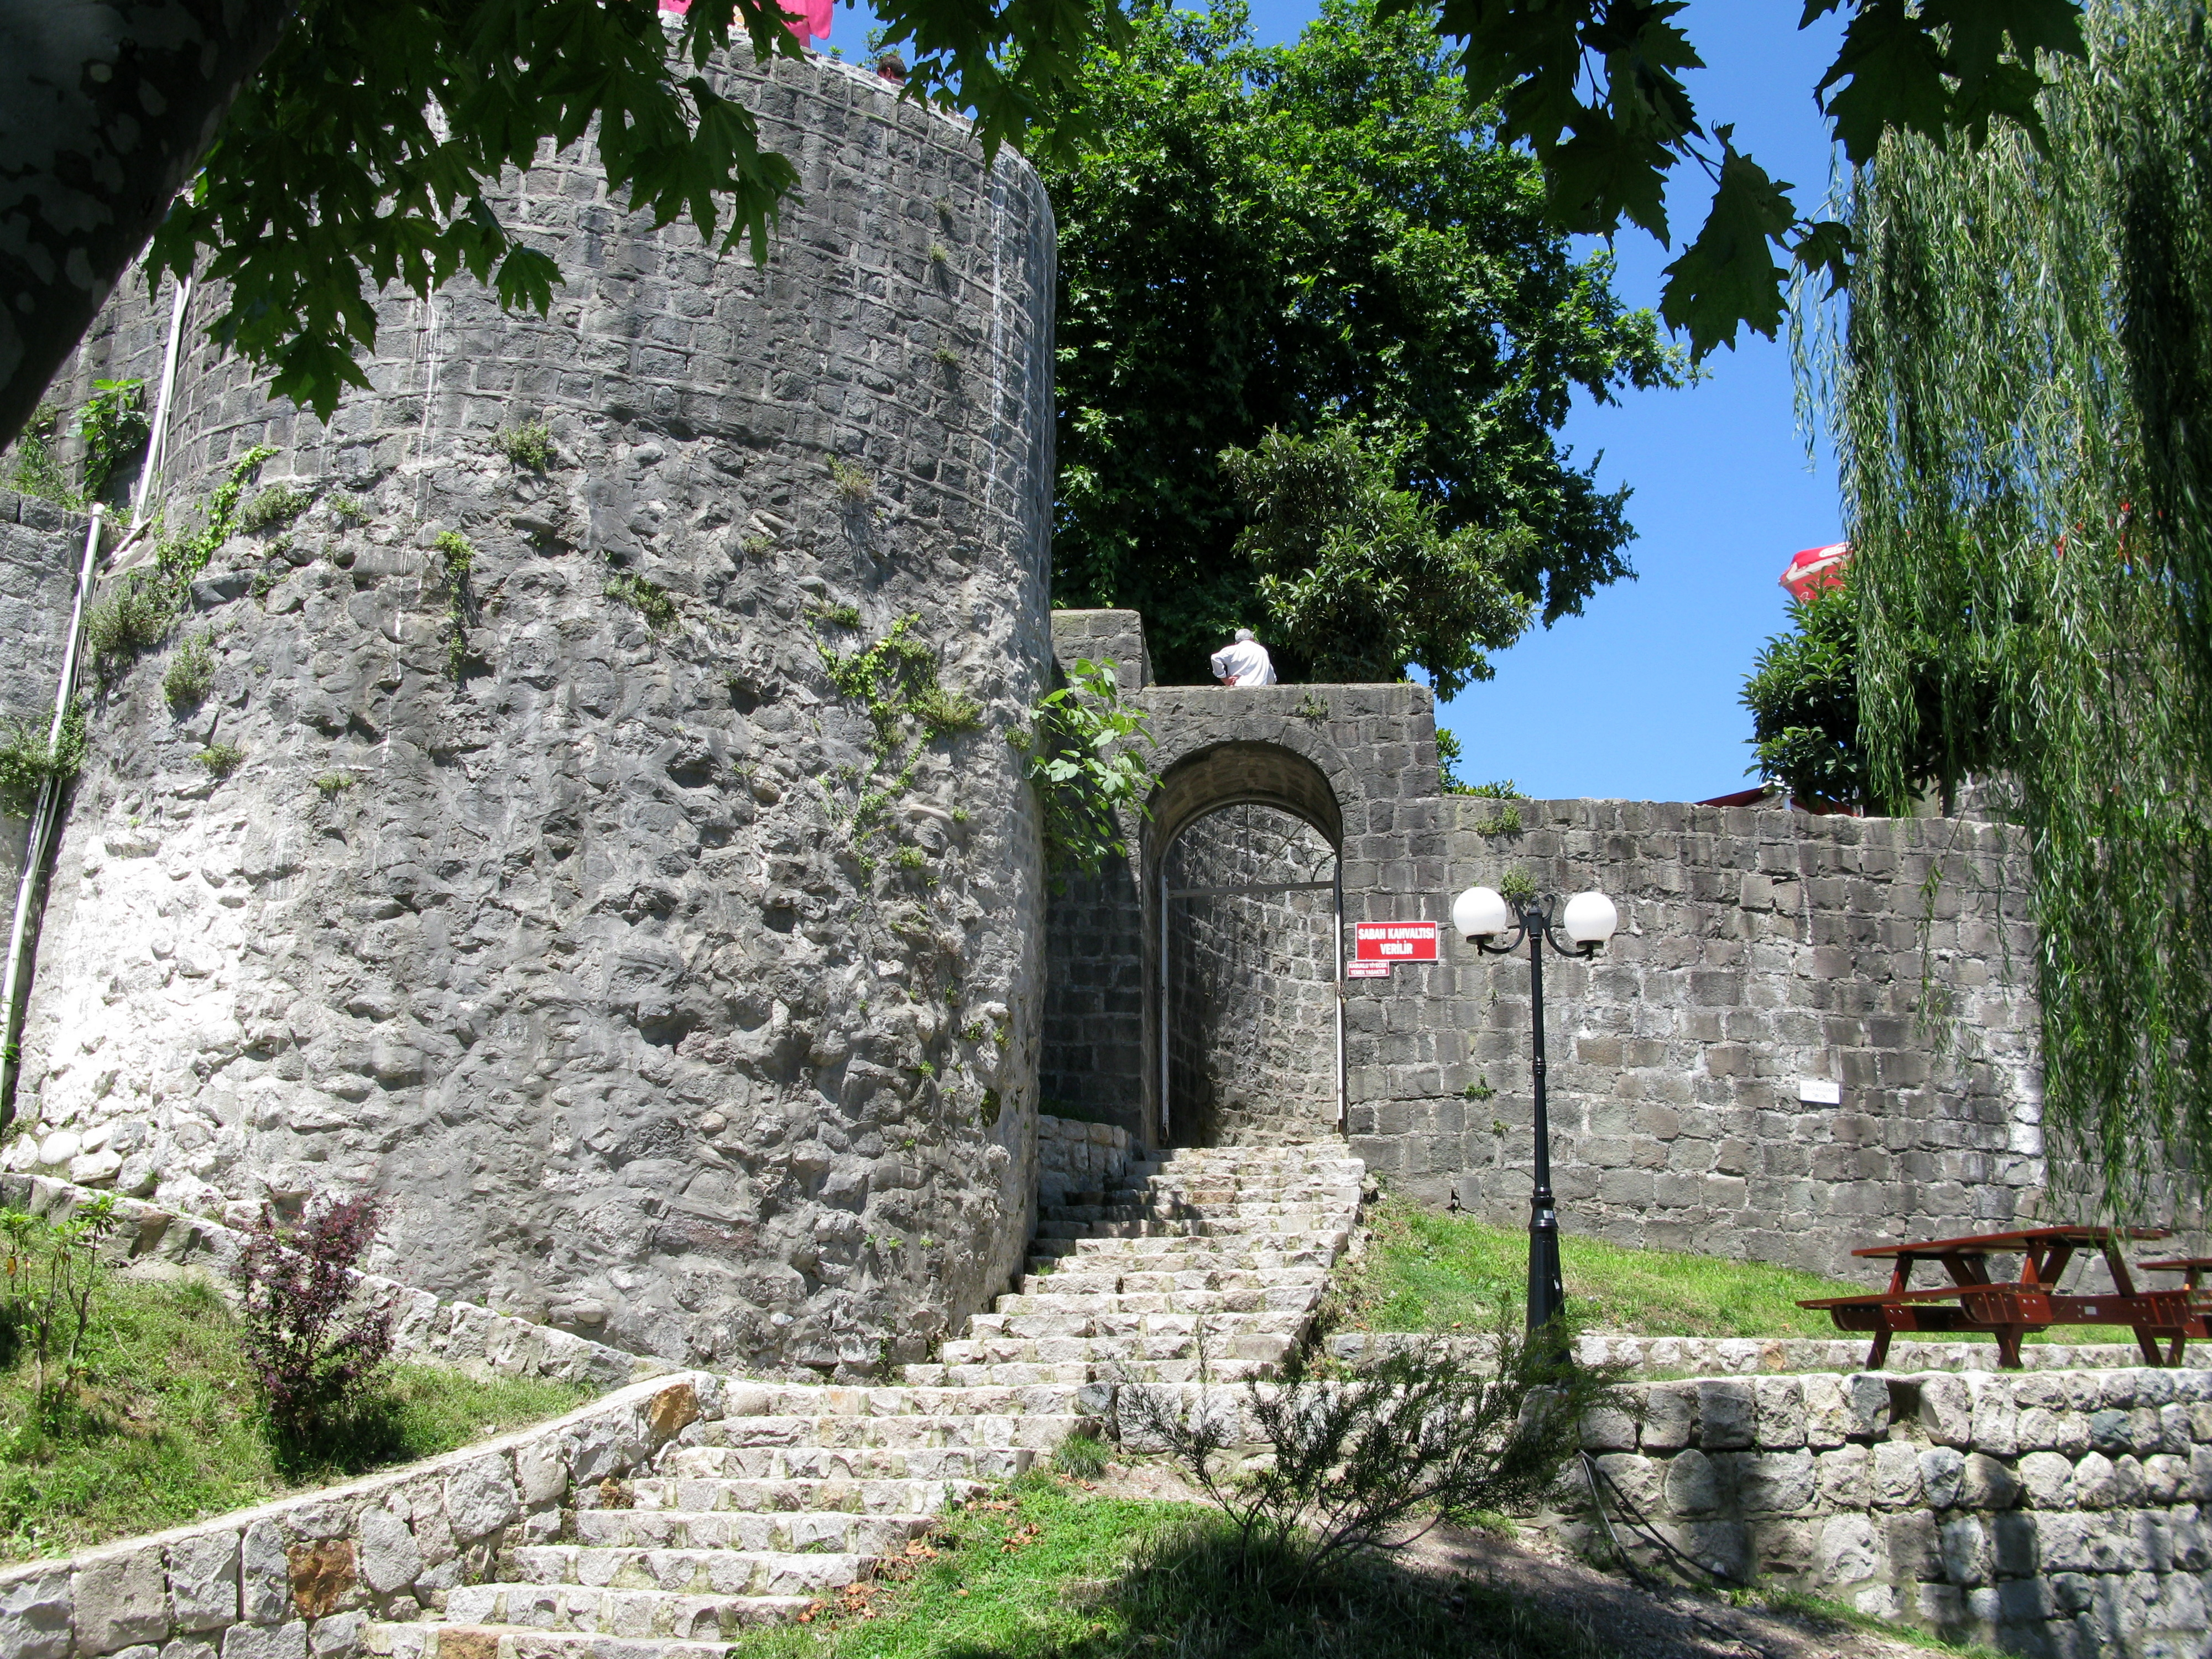 Rize Turkey  City pictures : ... :Entrance of the Castle of Rize, Rize, Turkey Wikimedia Commons